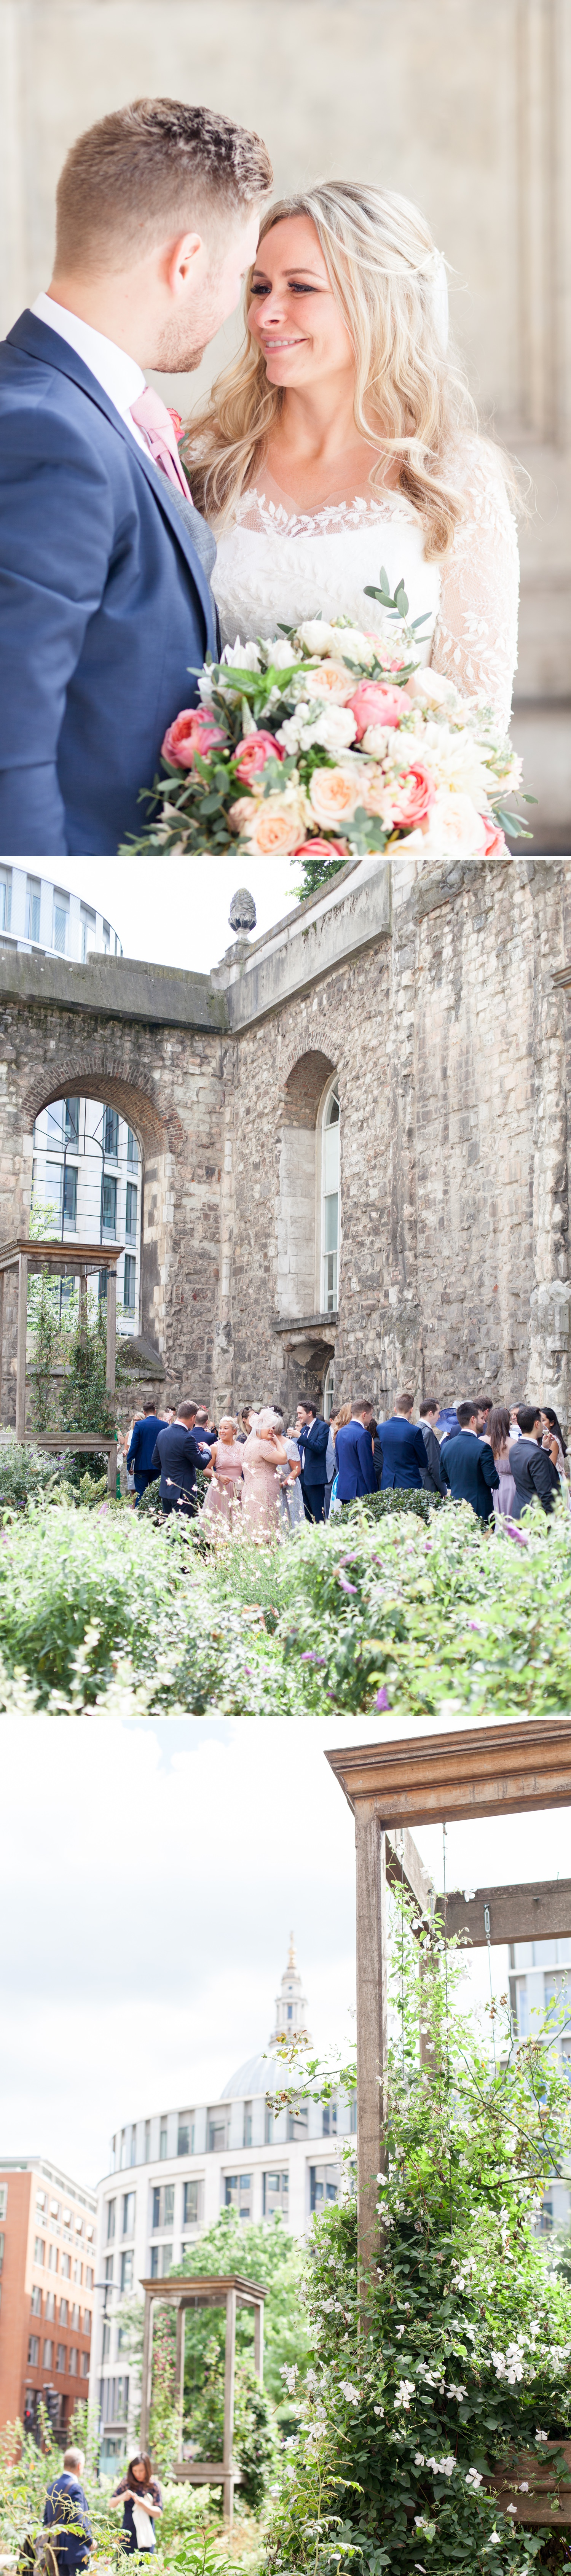 Charlotte & Adam's St. Paul's Cathedral wedding - a wedding reception at Christchurch Greyfriars